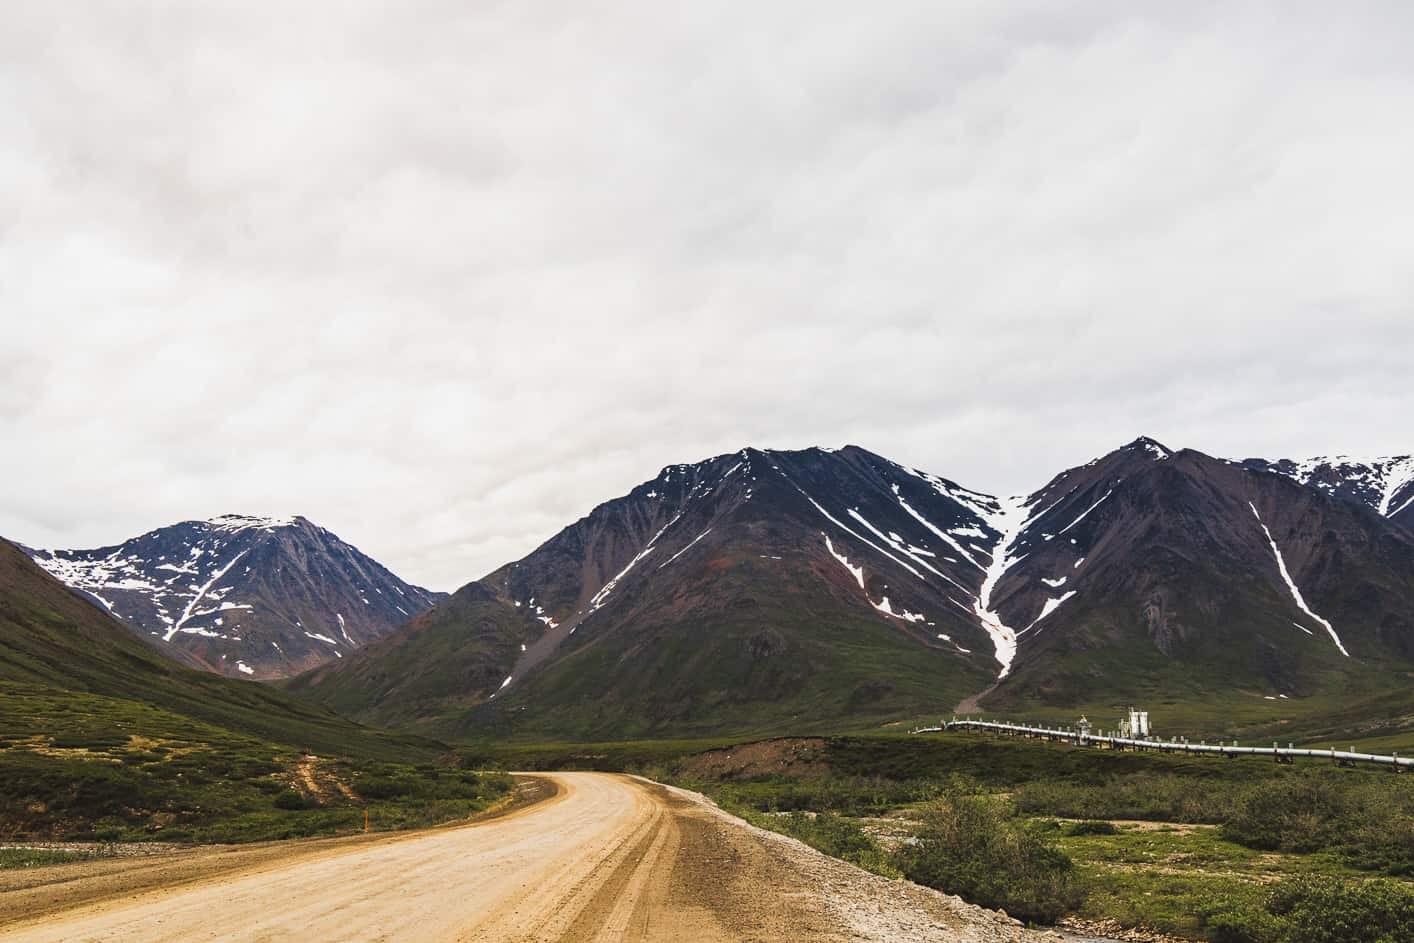 Dirt road going into snow covered mountains